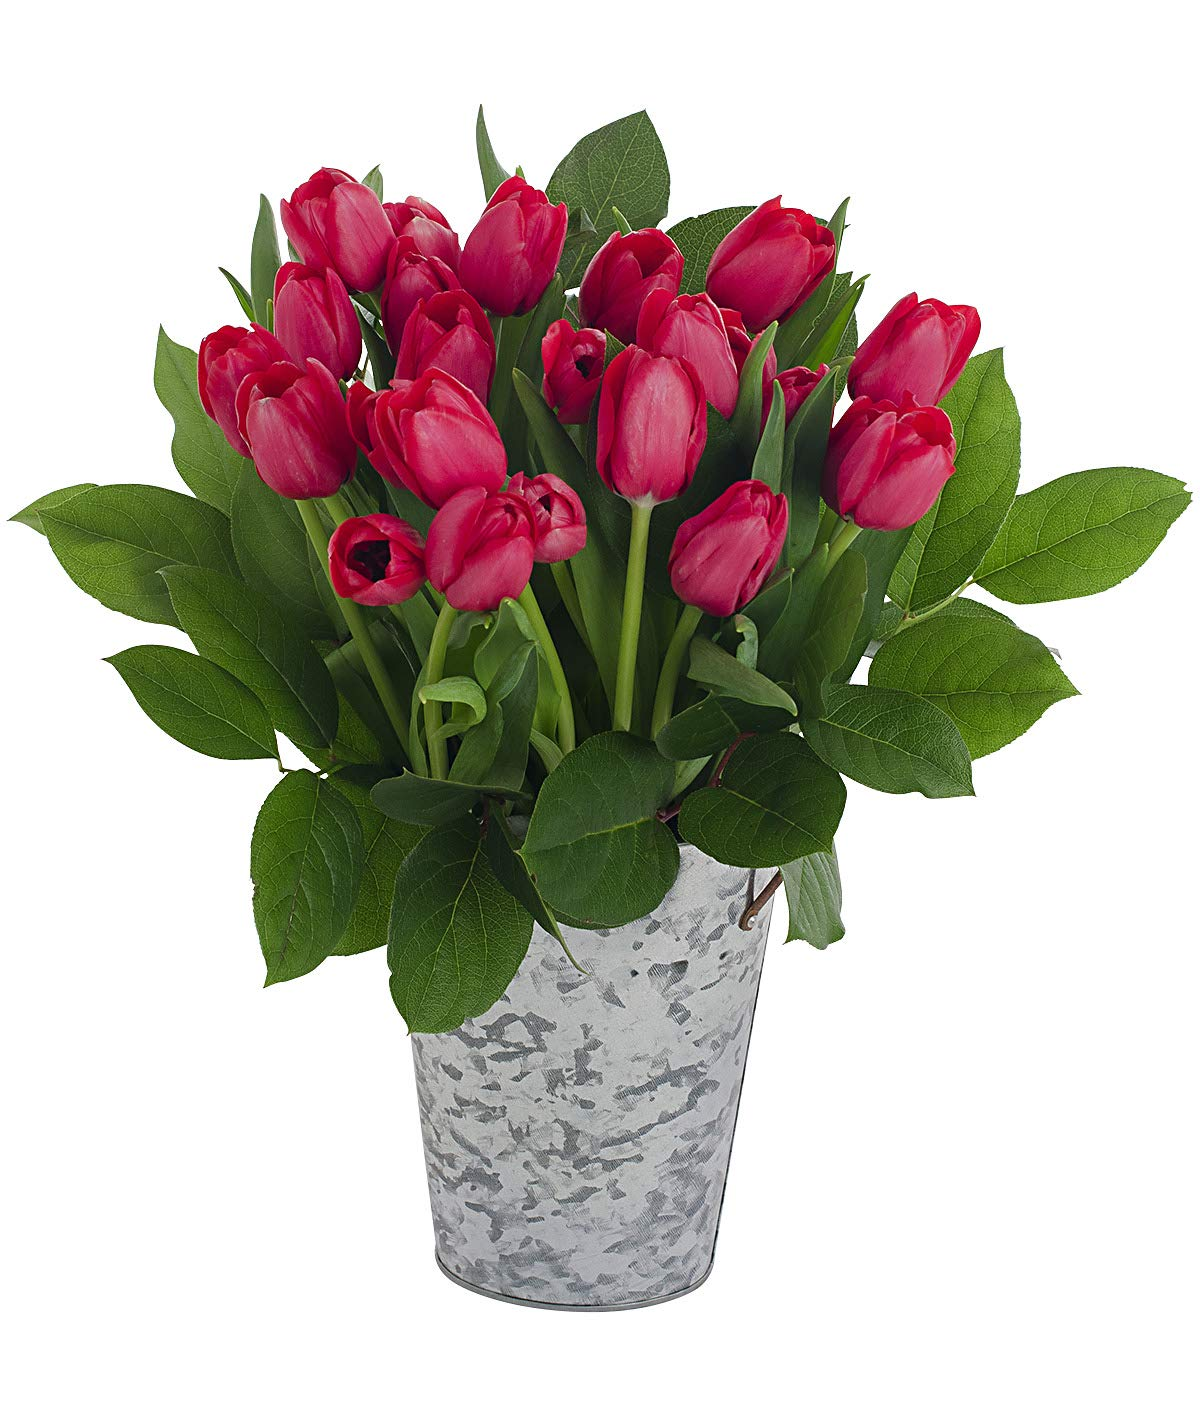 Stargazer Barn Passion Bouquet 2 Dozen Red Tulips with French Bucket Style Vase